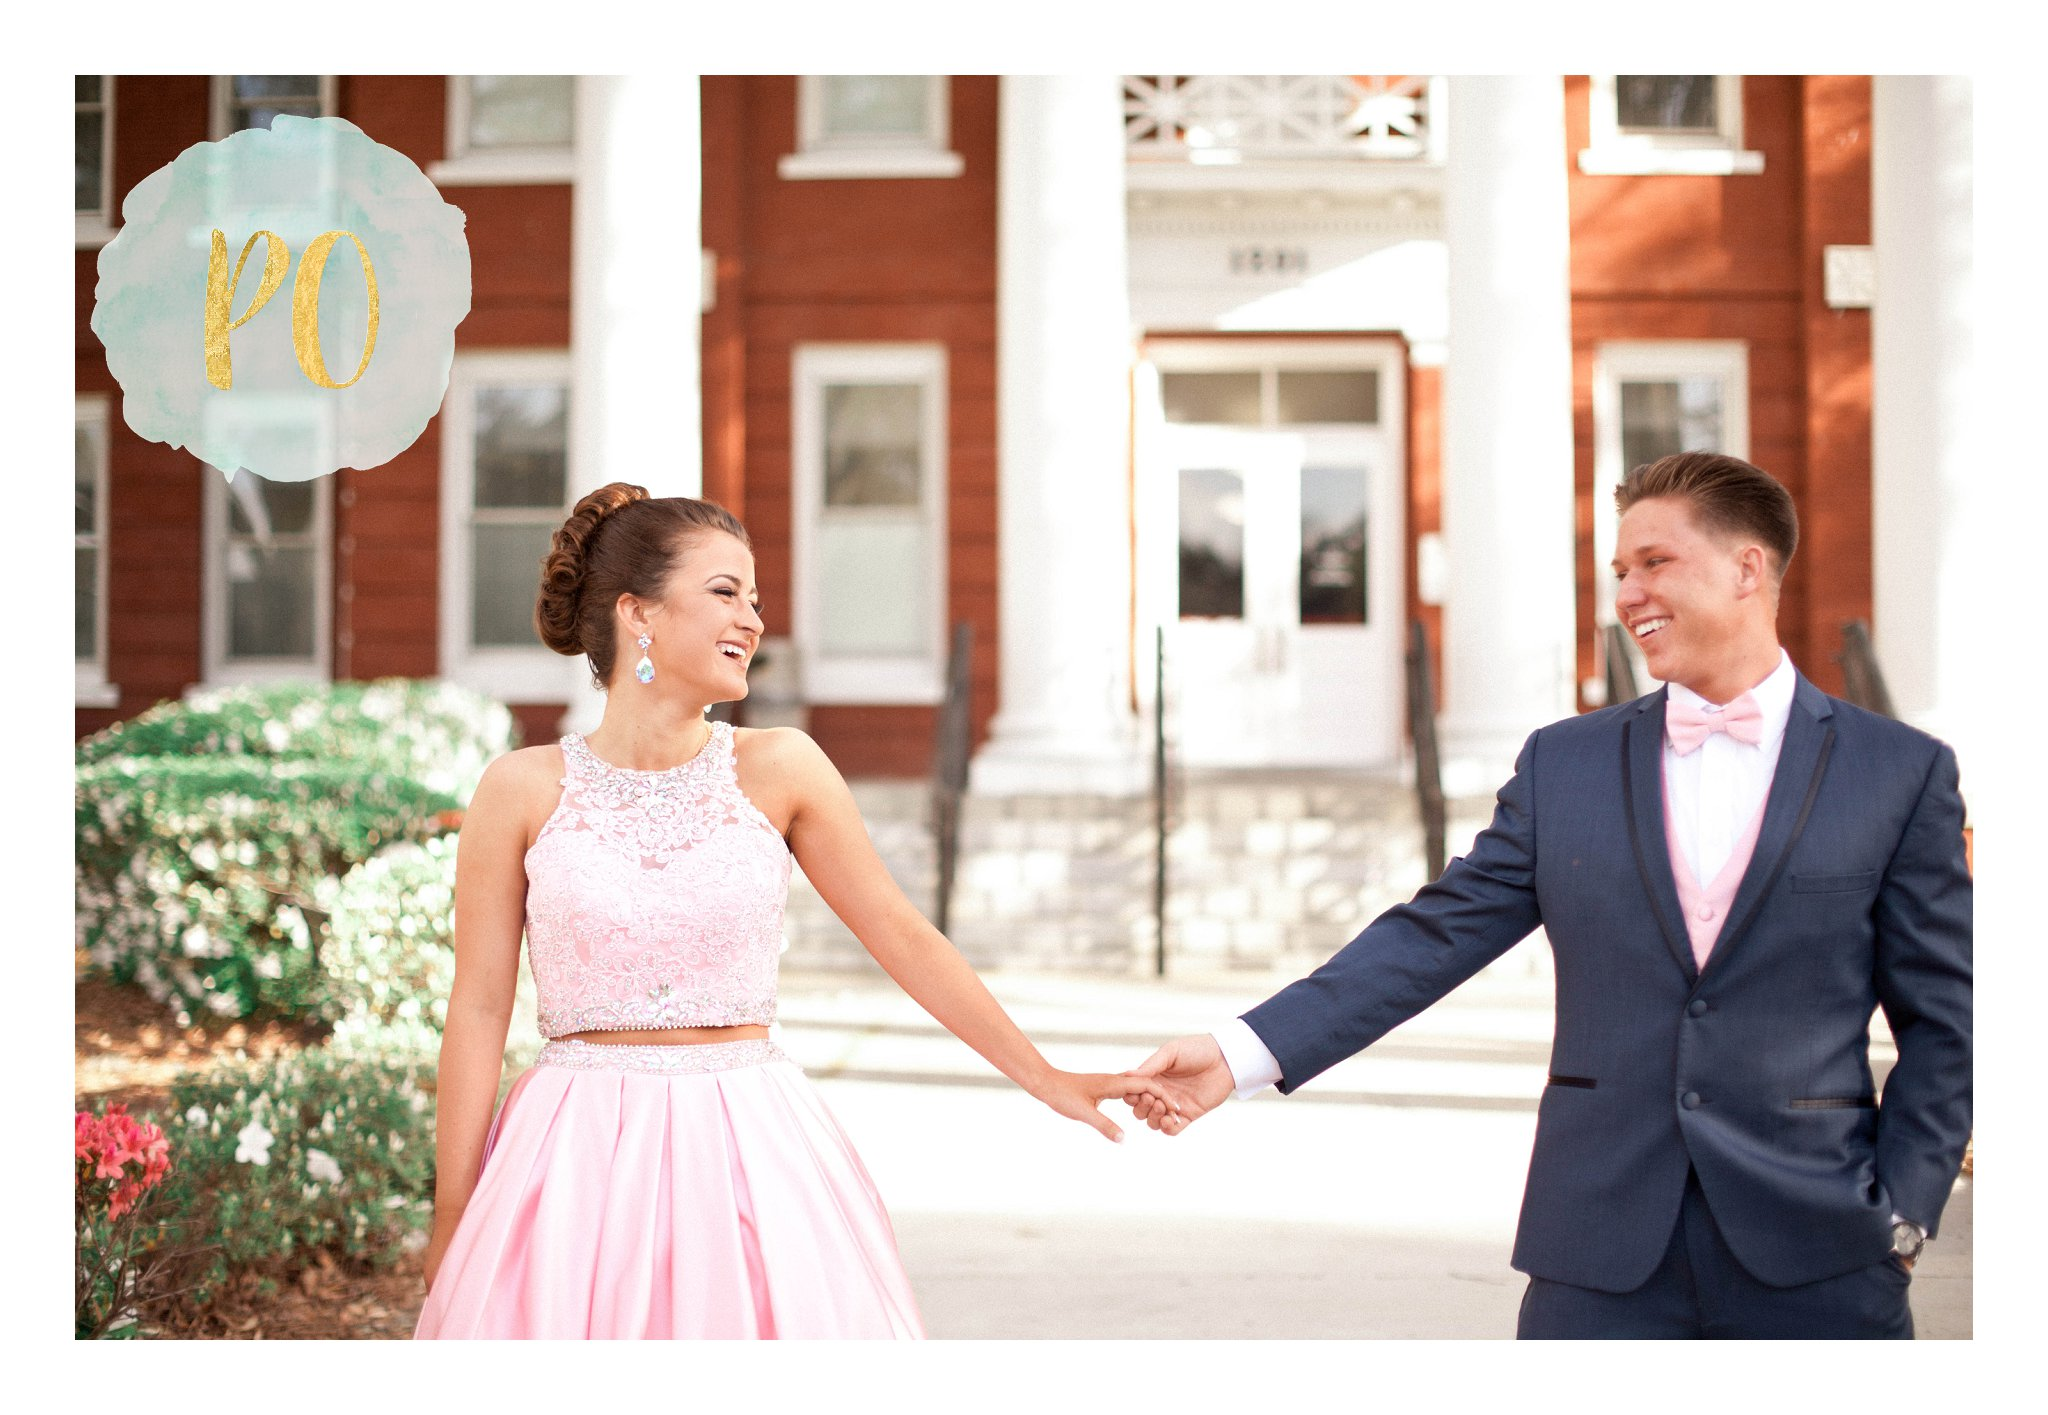 kylee_christian_prom_poured_out_photography-60_WEB.jpg